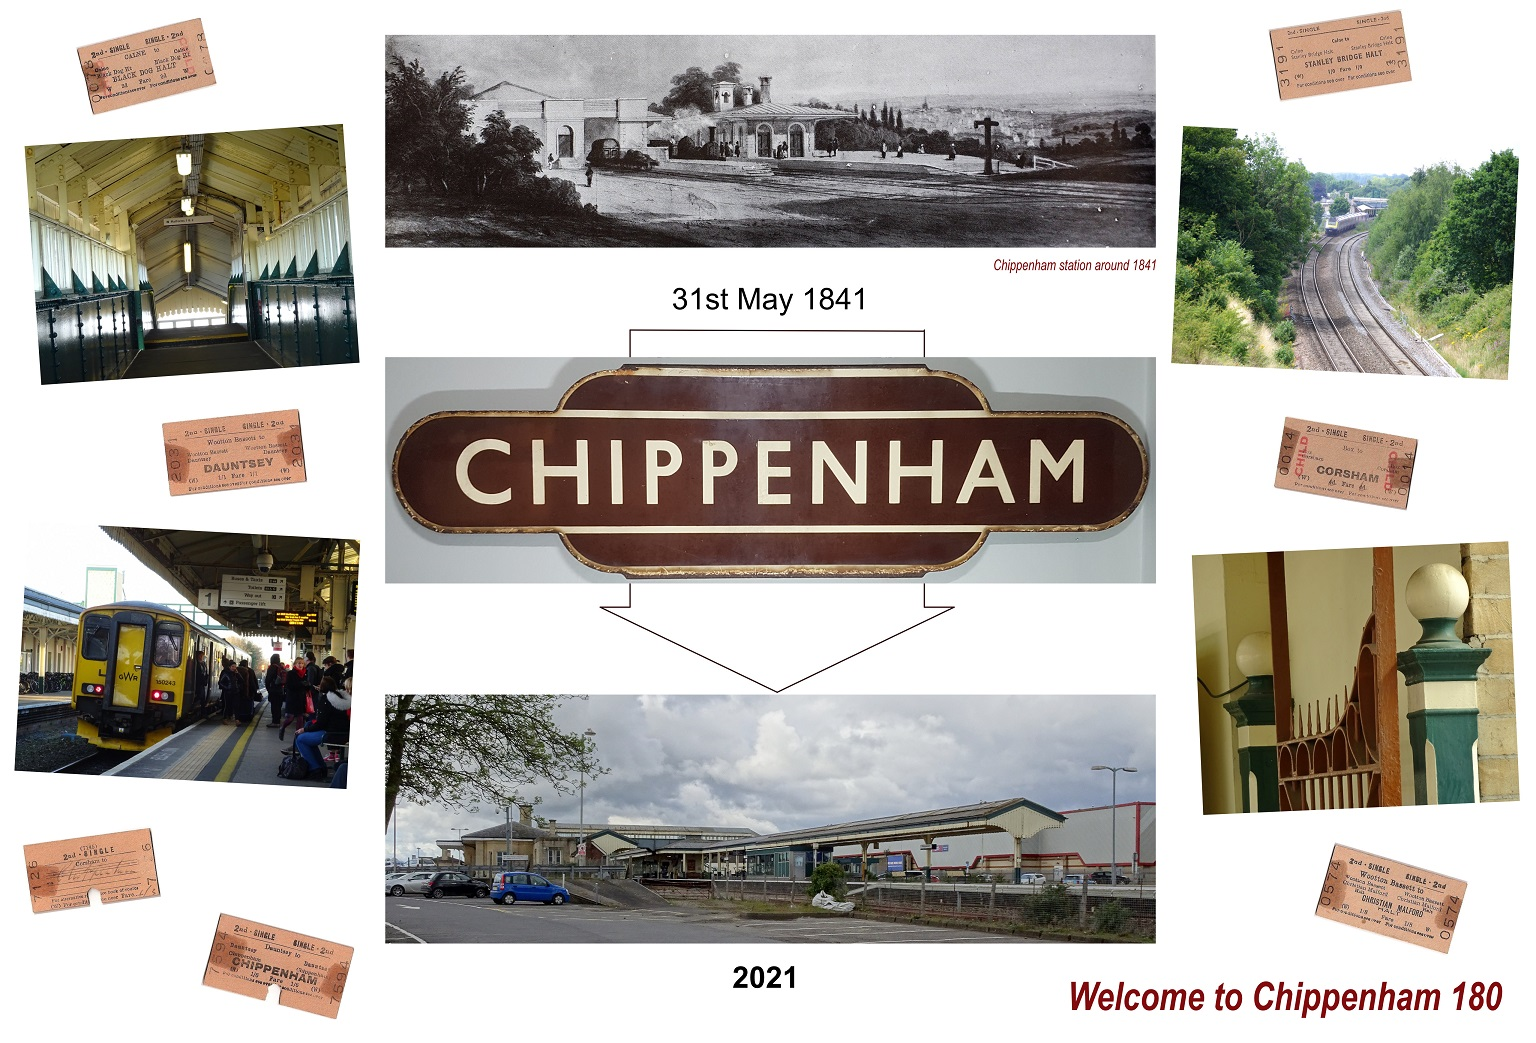 A montage of photos including an illustration of the station in 1841 and a photo of the station today